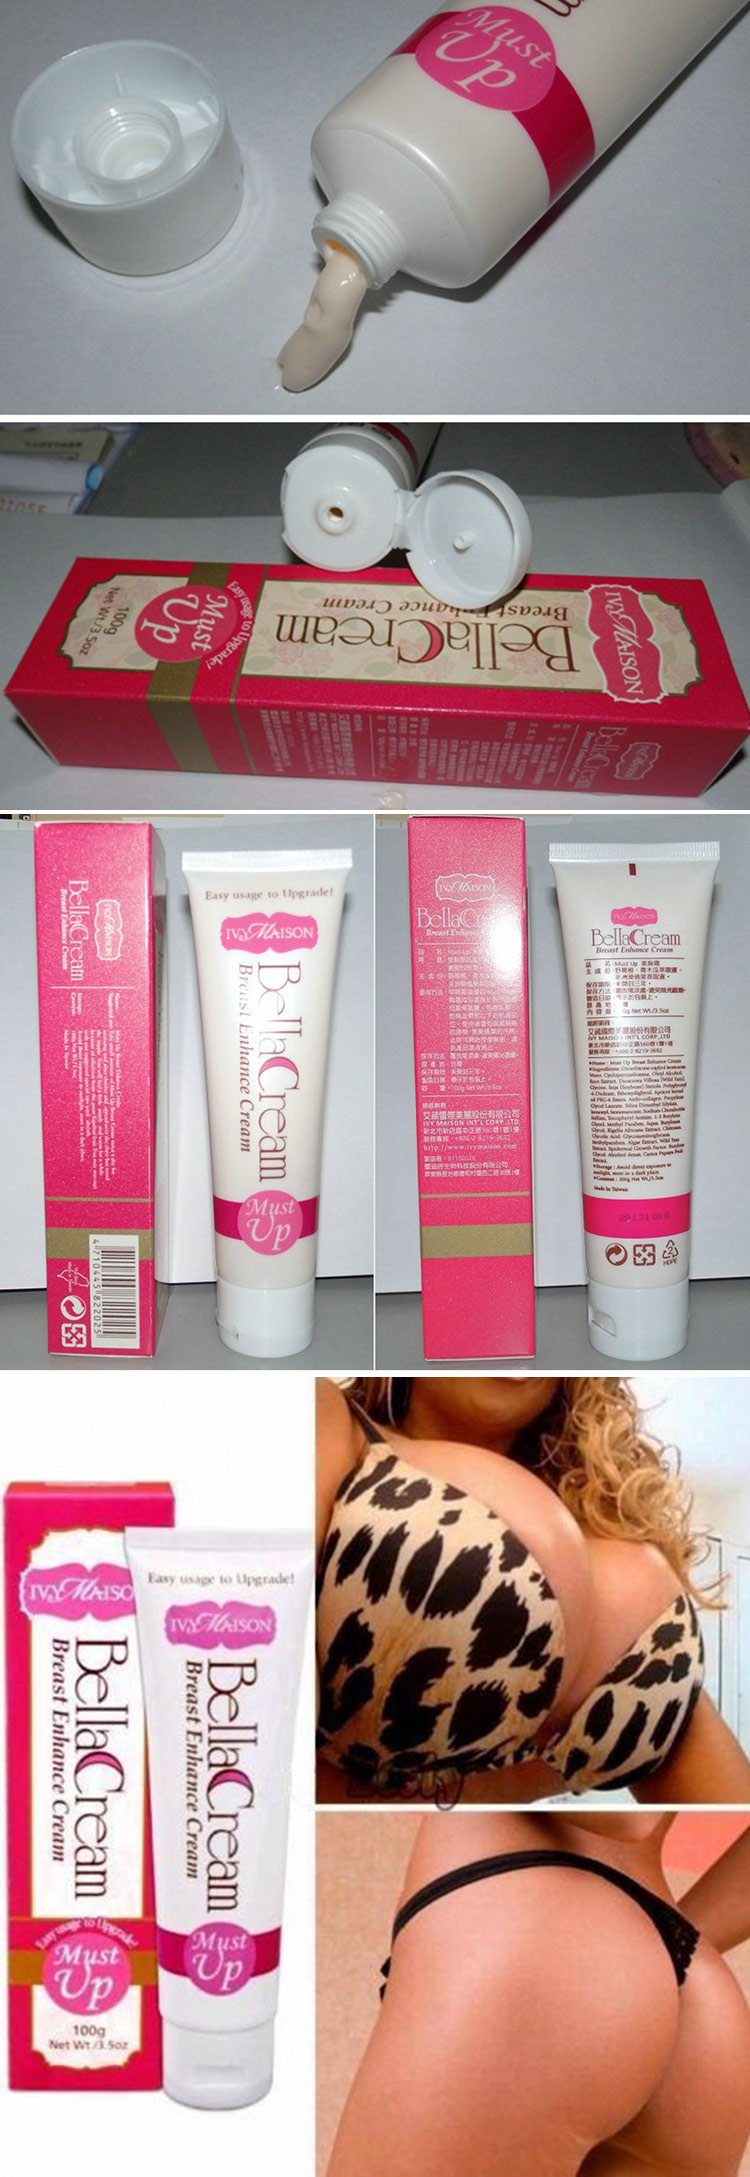 Wholesale Quality Guaranteed Must up Beauty Bust Cream (100ml)